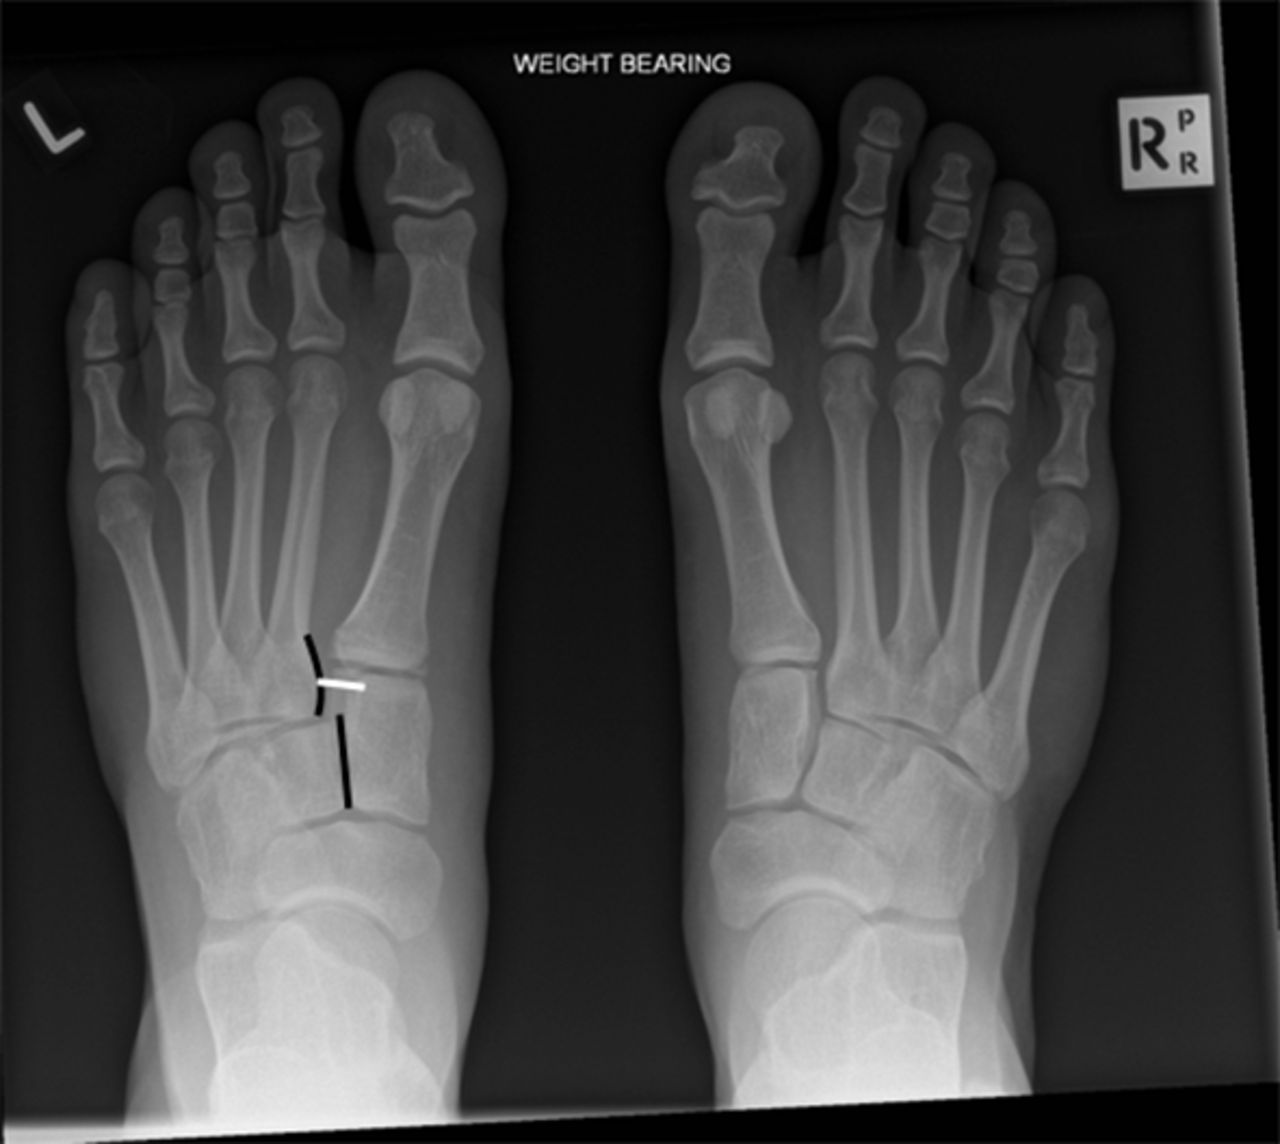 A painful foot: Lisfranc fracture-dislocations | The BMJ